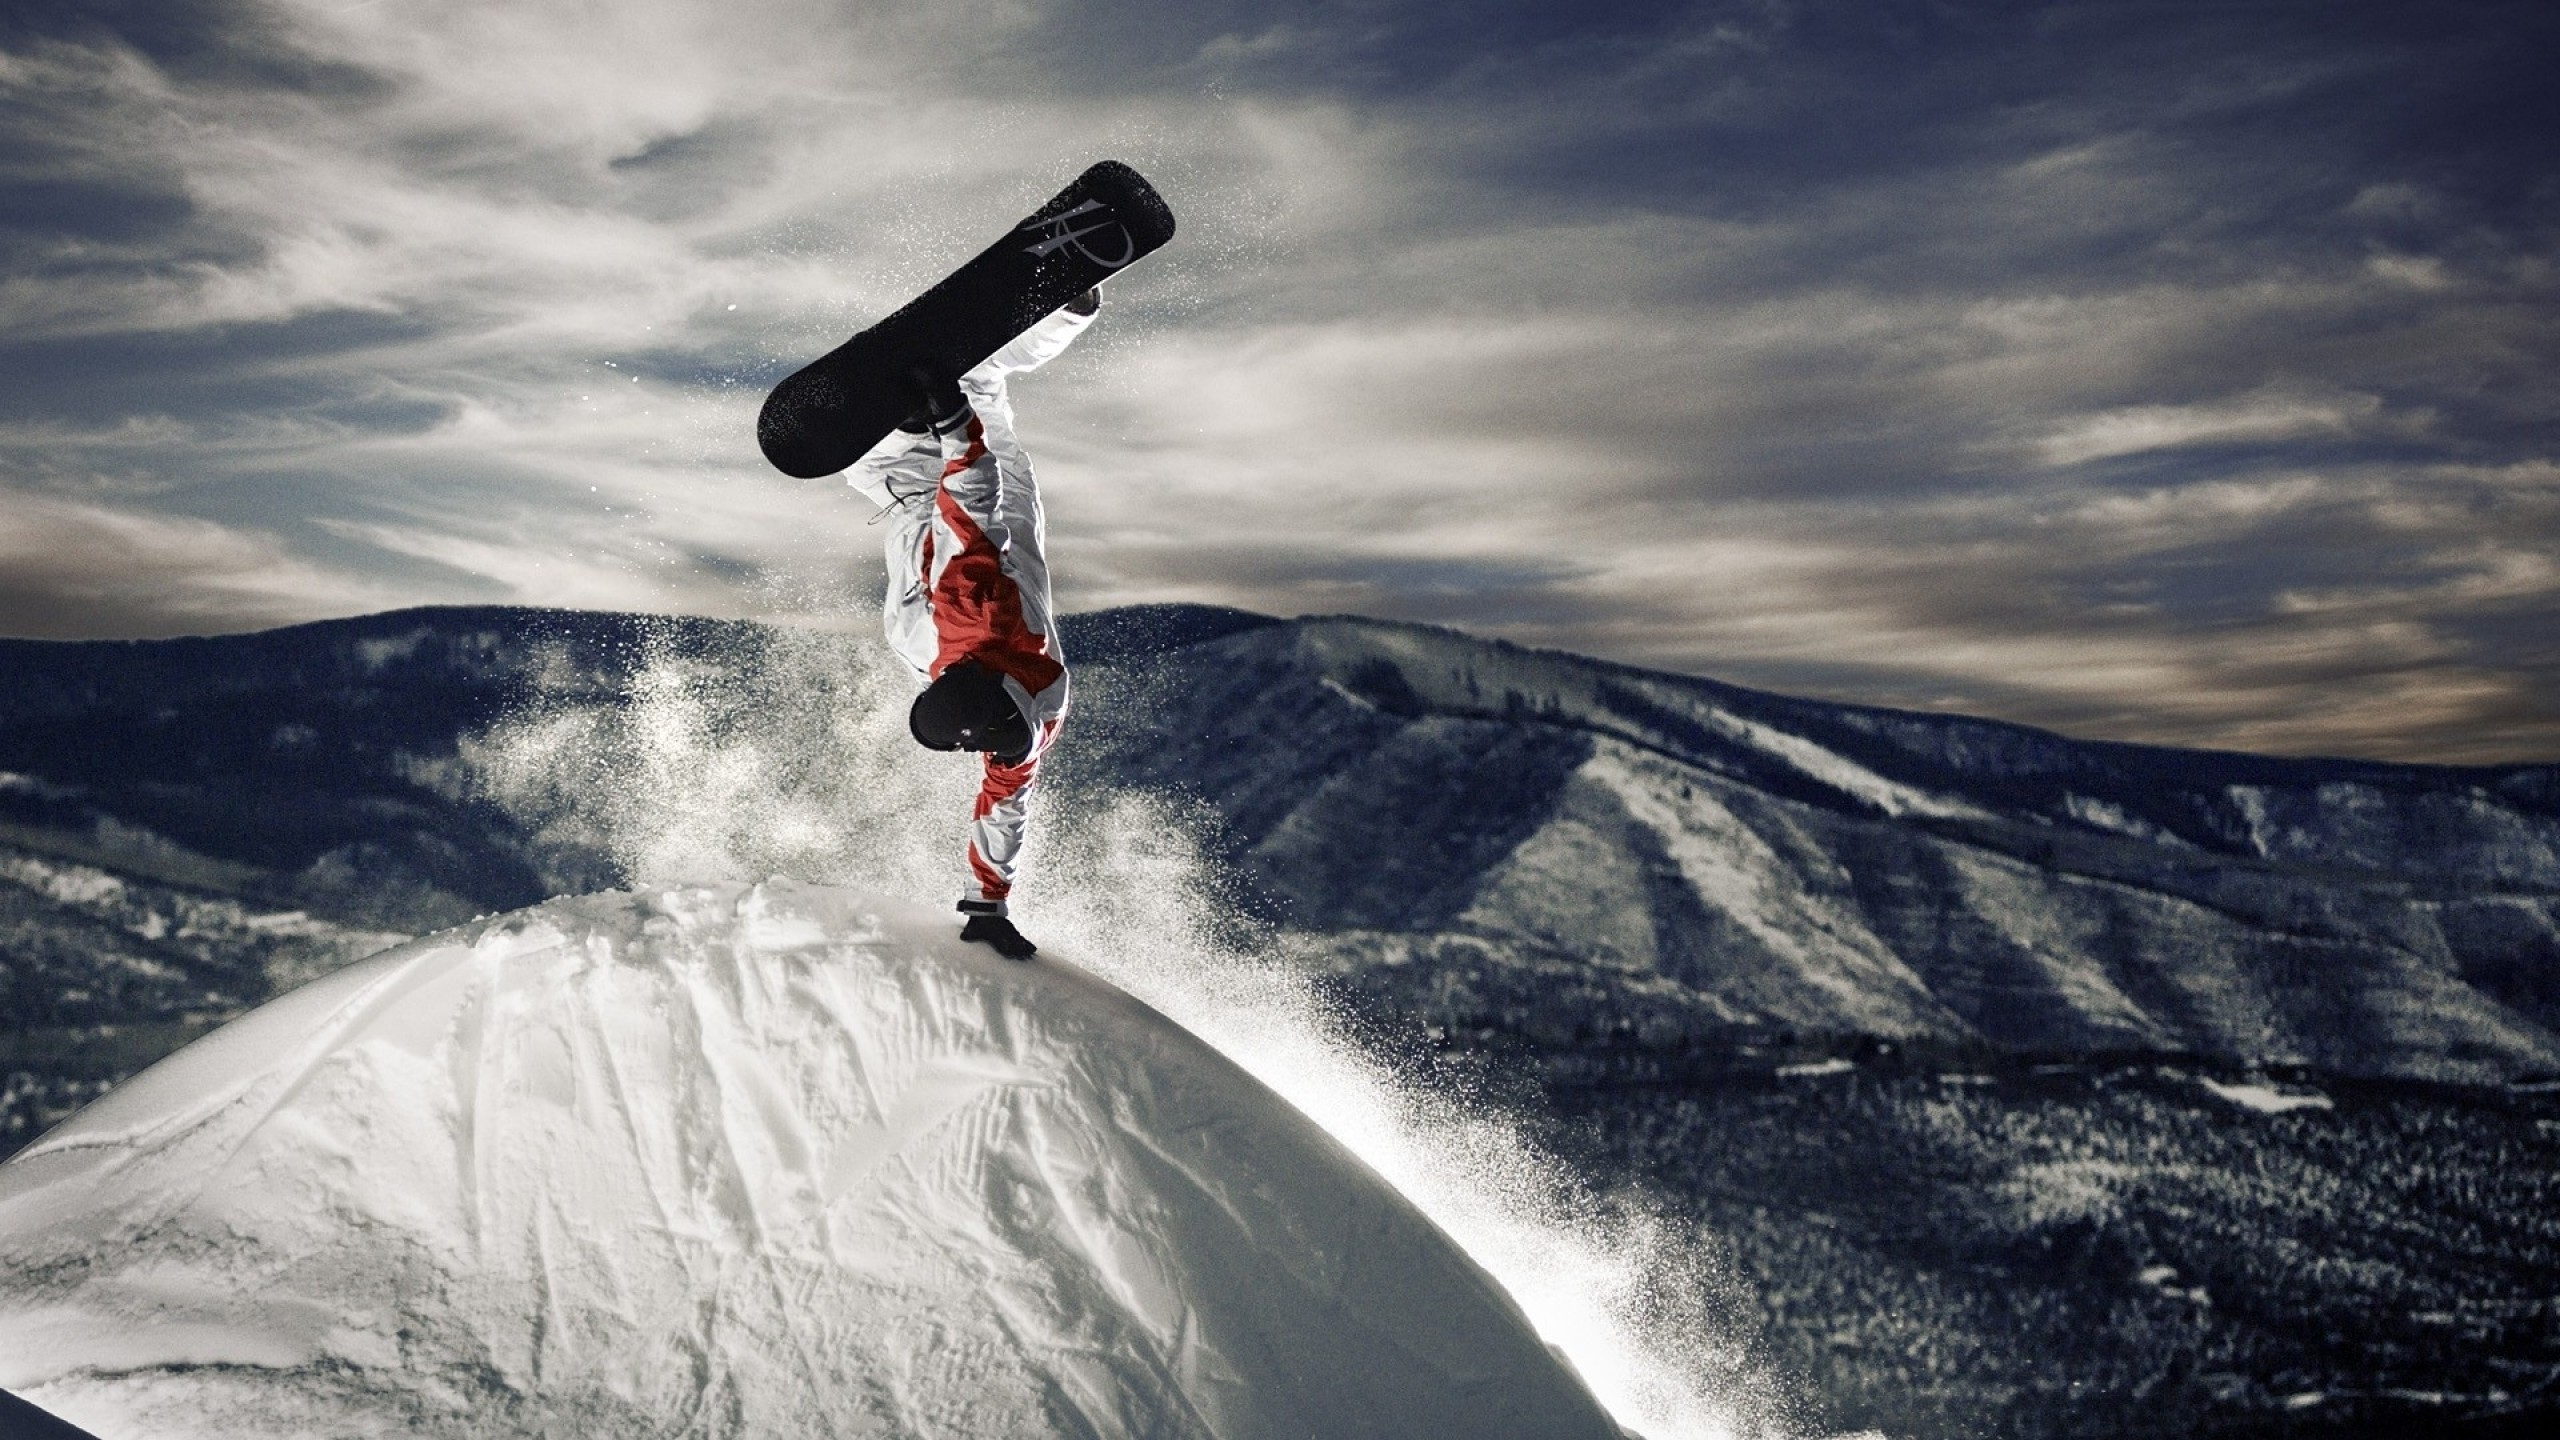 snowboard wallpaper | 2560x1440 | #73436